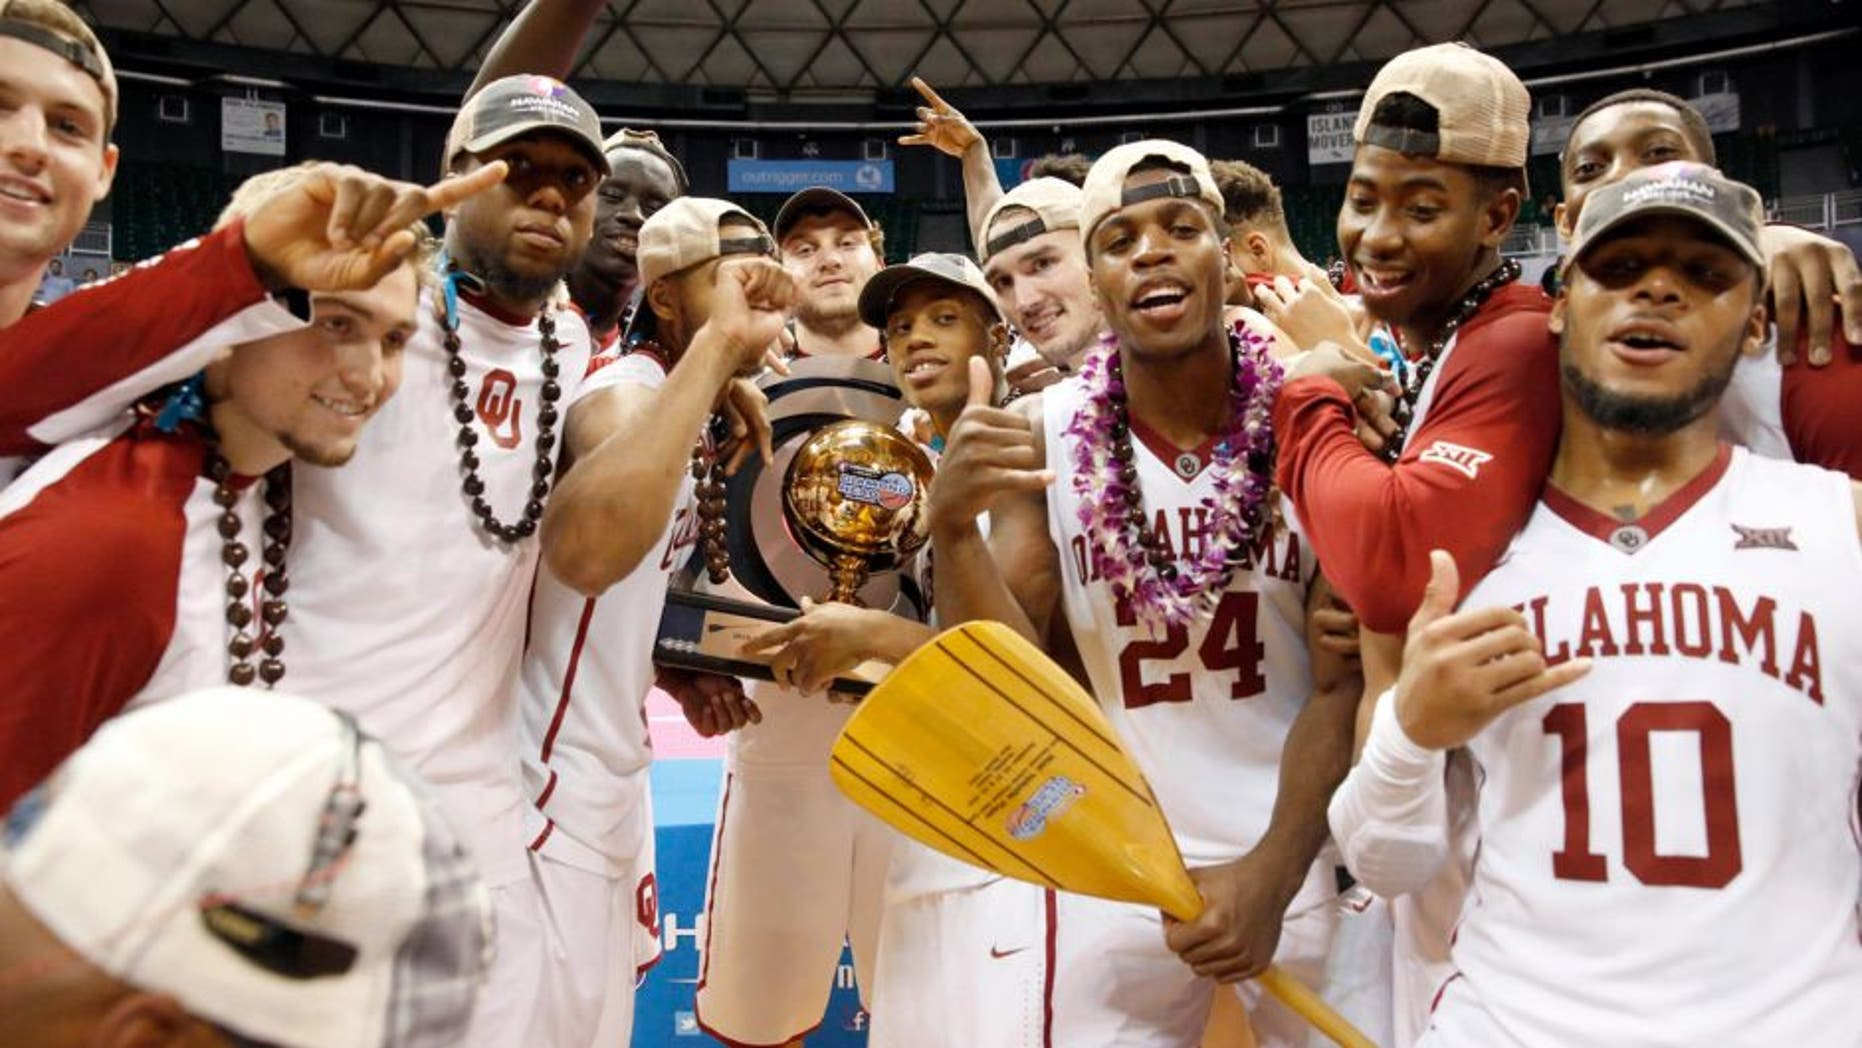 Dec 25, 2015; Honolulu, HI, USA; The Oklahoma Sooners celebrate after defeating the Harvard Crimson at the Stan Sheriff Center. Oklahoma Sooners defeated the Harvard Crimson 83-71. Mandatory Credit: Marco Garcia-USA TODAY Sports